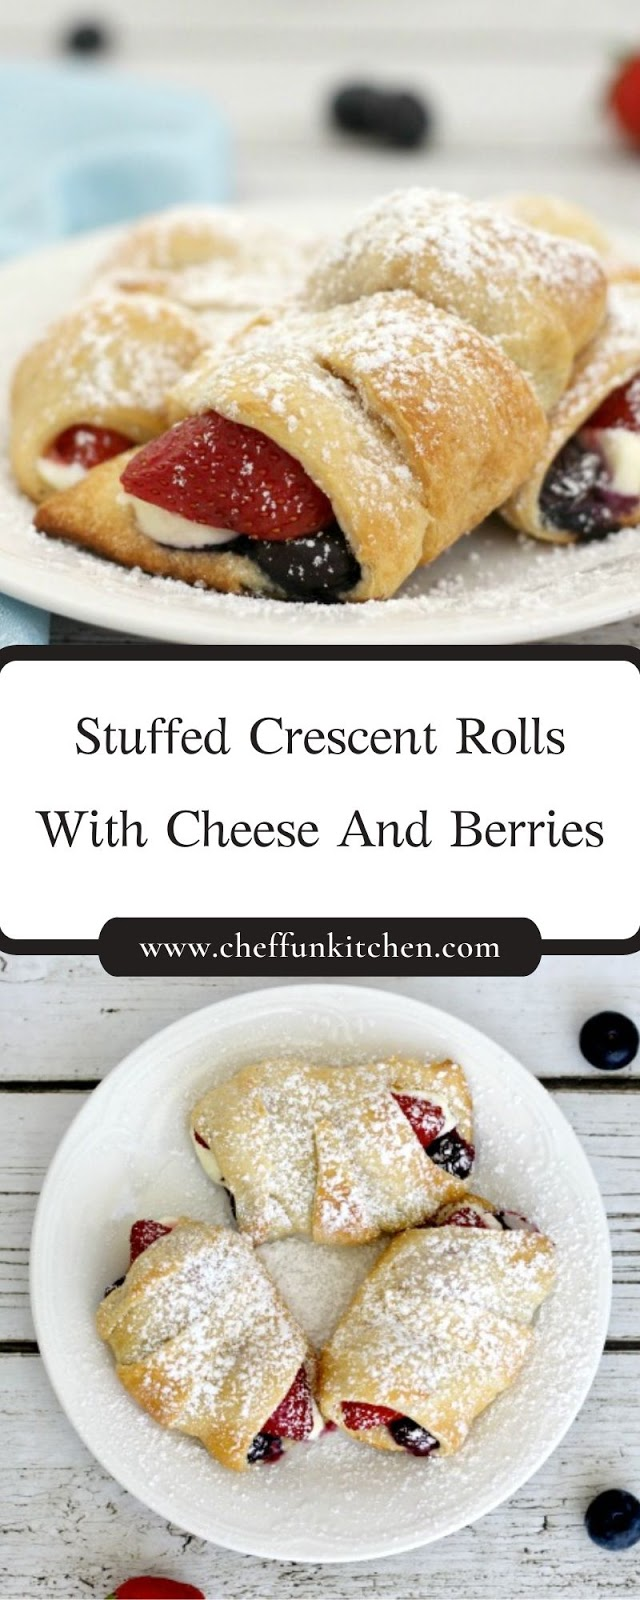 Stuffed Crescent Rolls With Cheese And Berries